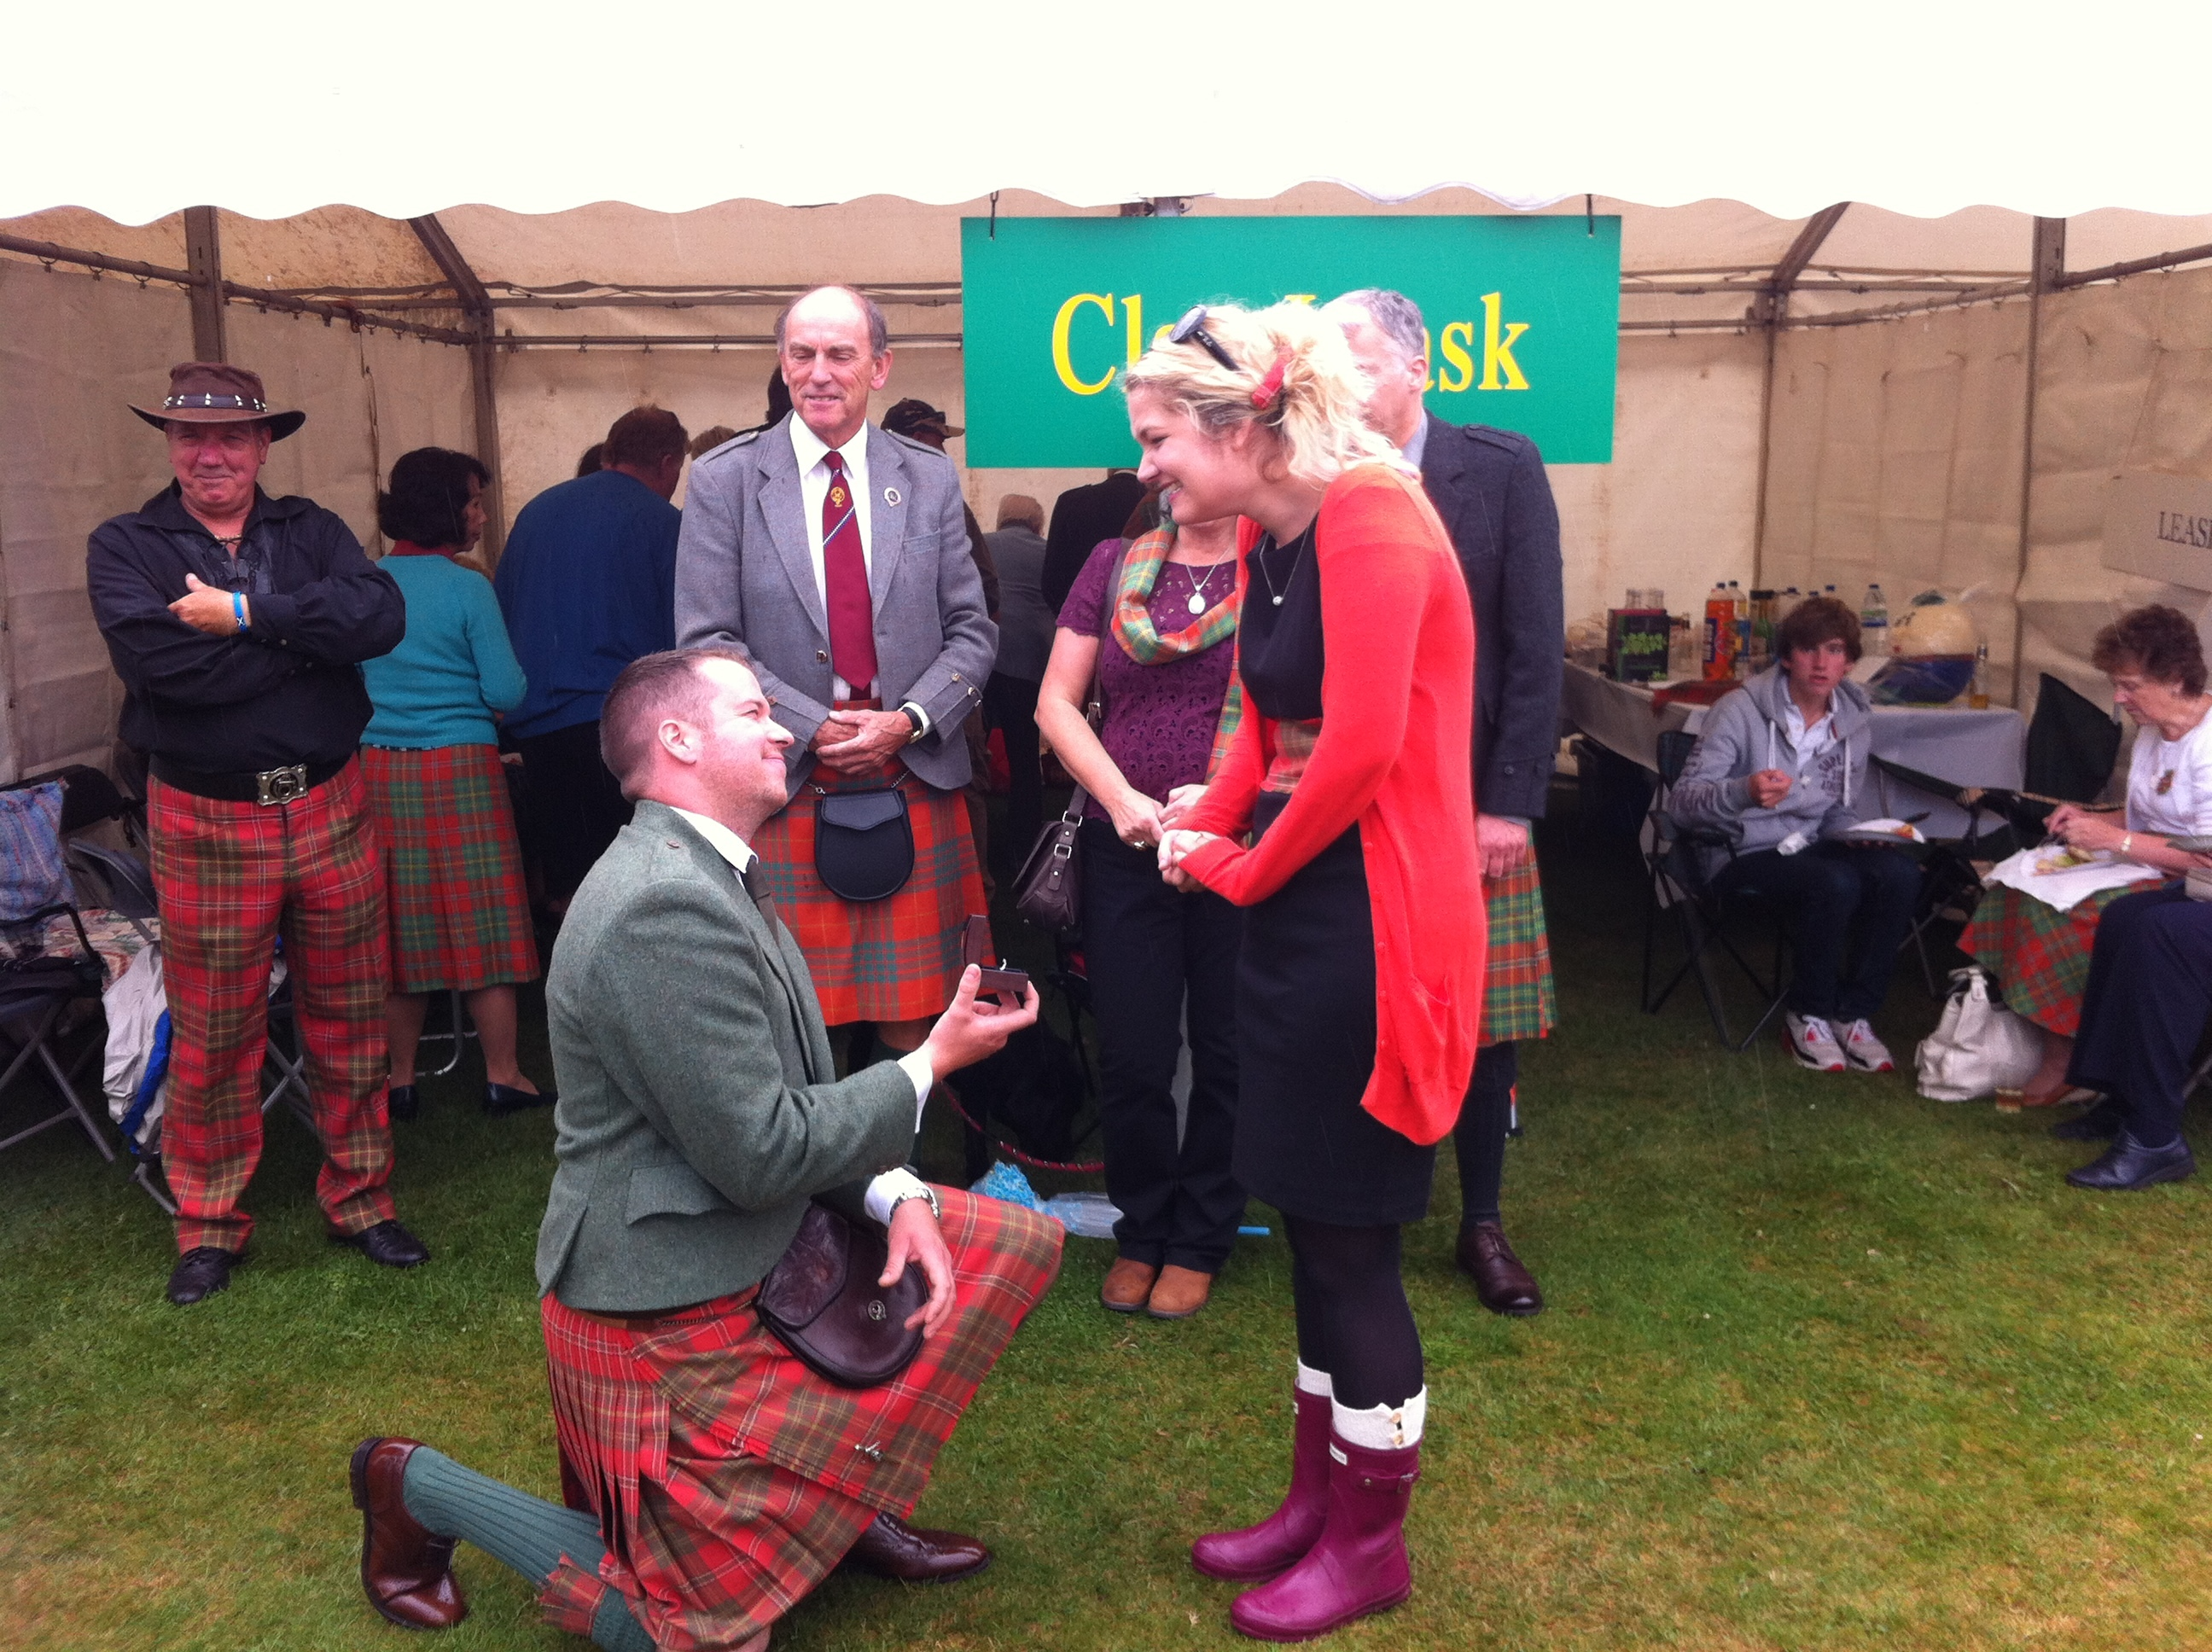 Sandy Leask proposes to girlfriend Fiona Miller at Aboyne Highland Games